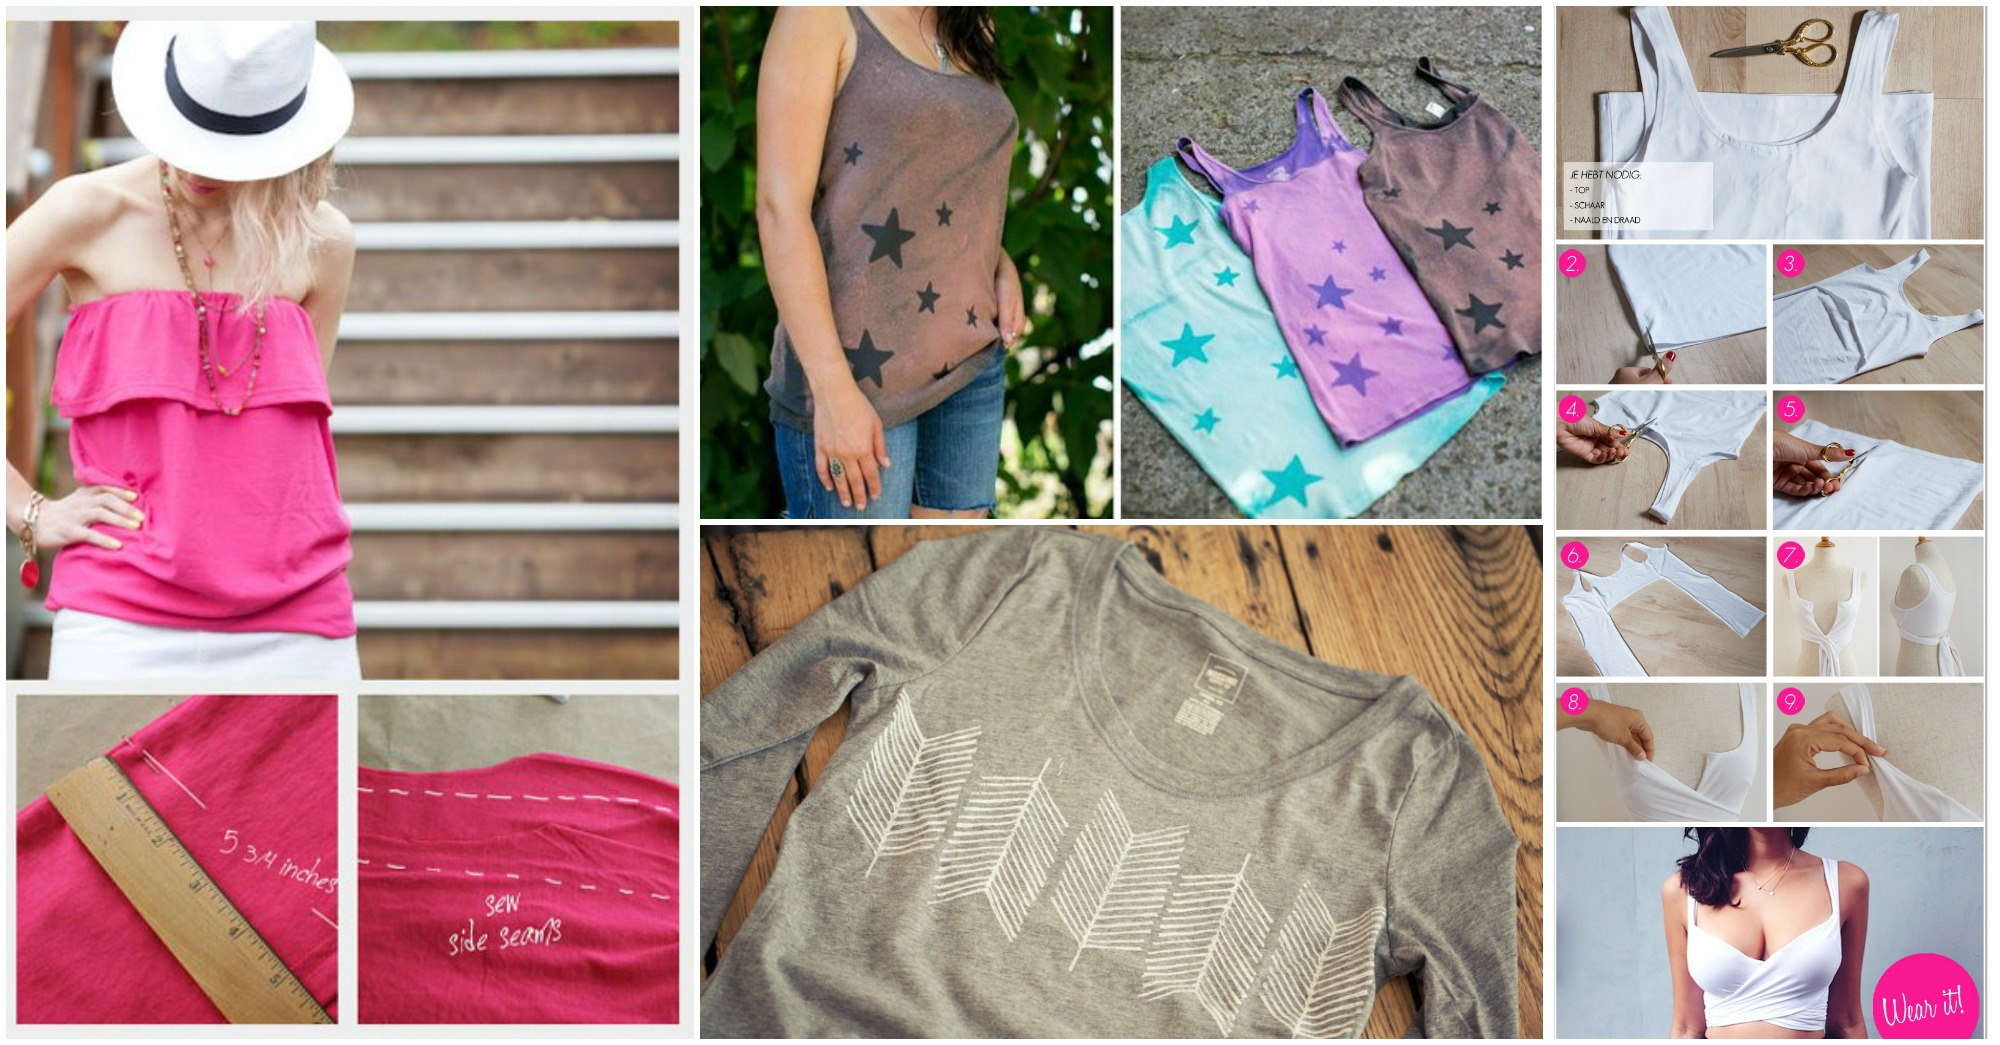 10 Tremendous DIY Summer Tees You Should Try Right Now